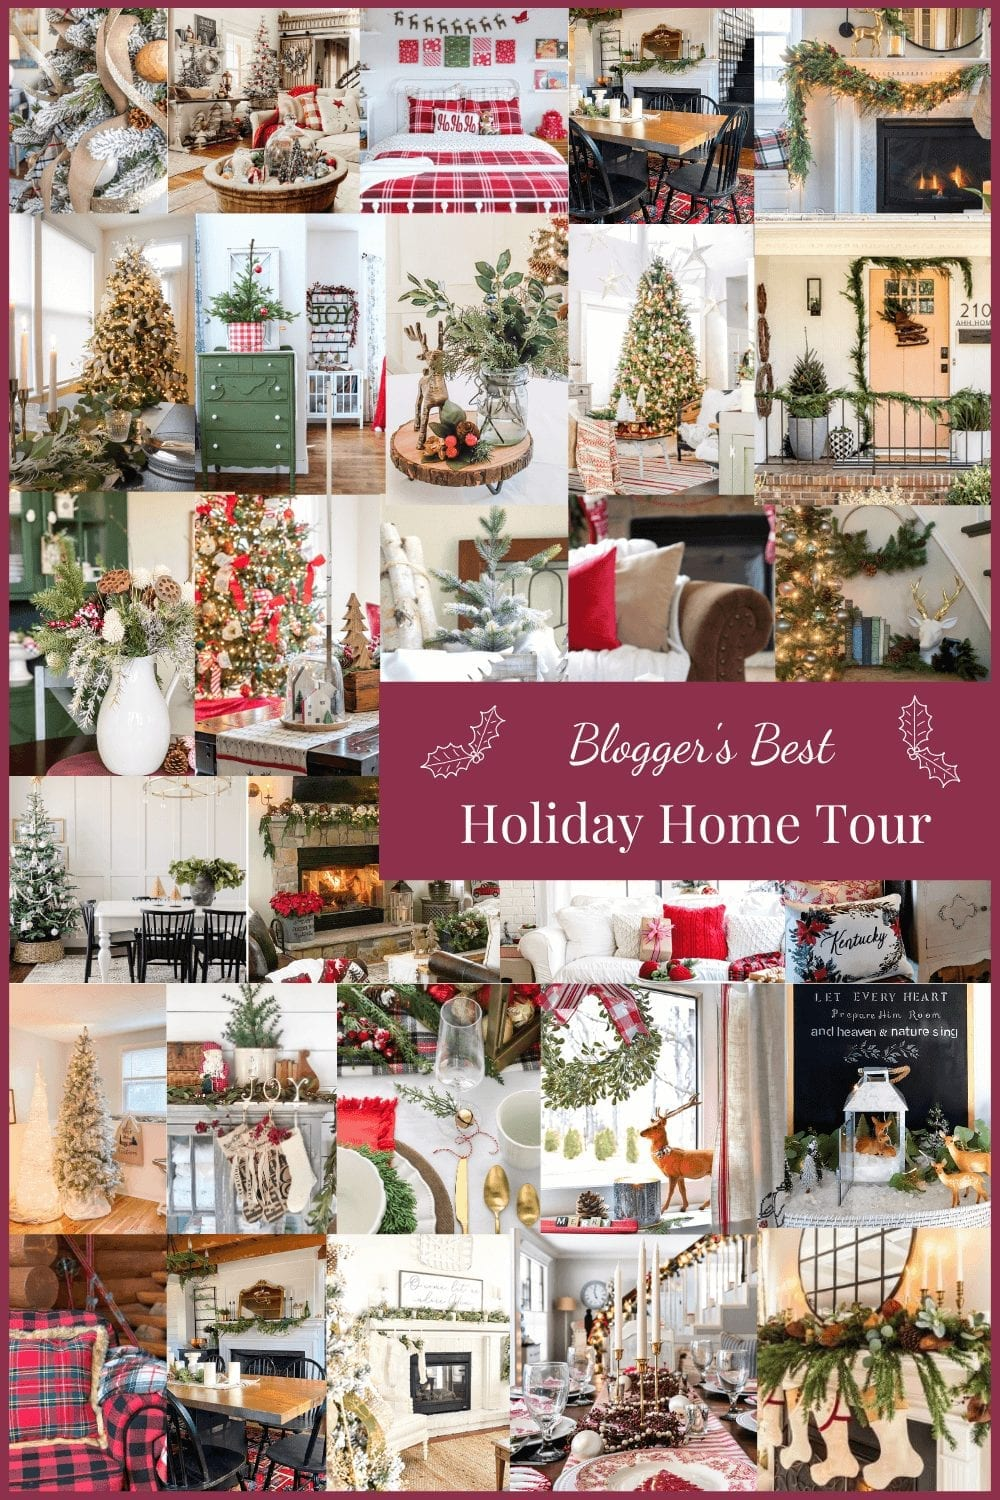 Need some Christmas inspiration? Stop by the Bloggers Best Holiday Home Tour!